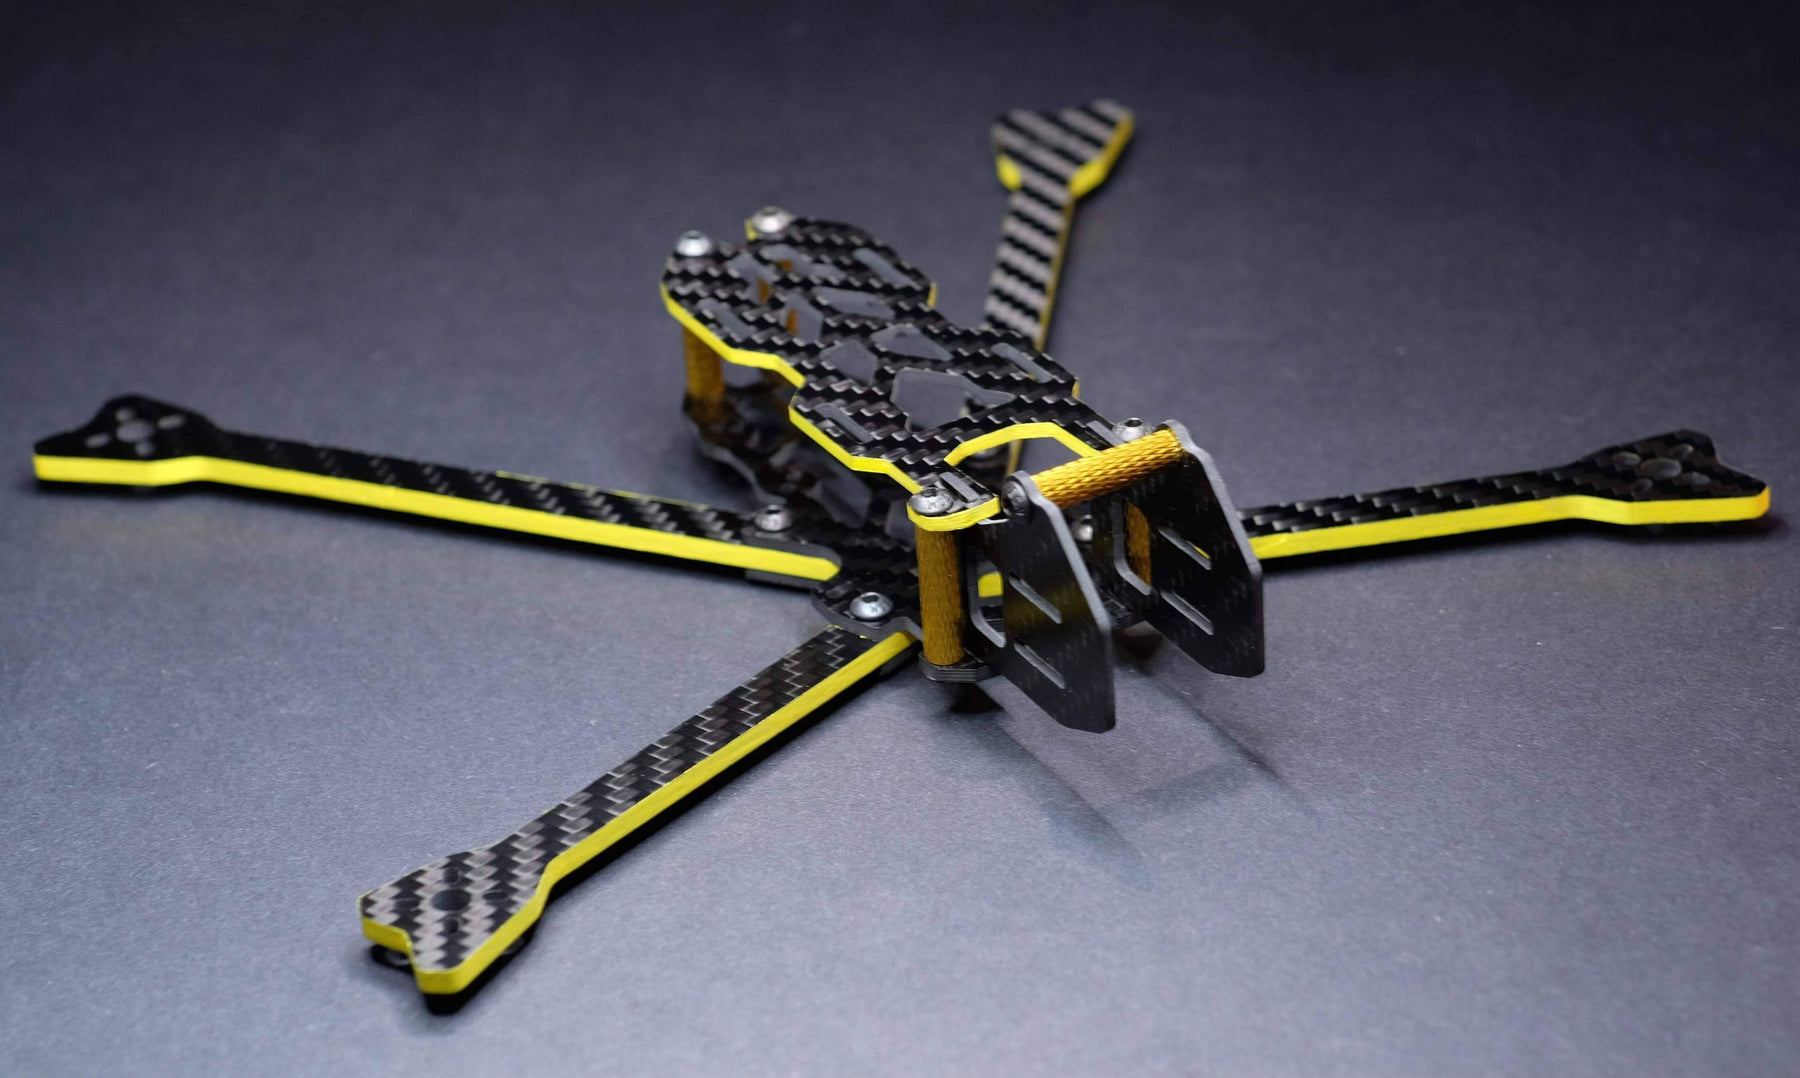 Is Ultralight 5 inch the new FPV drone hotness?